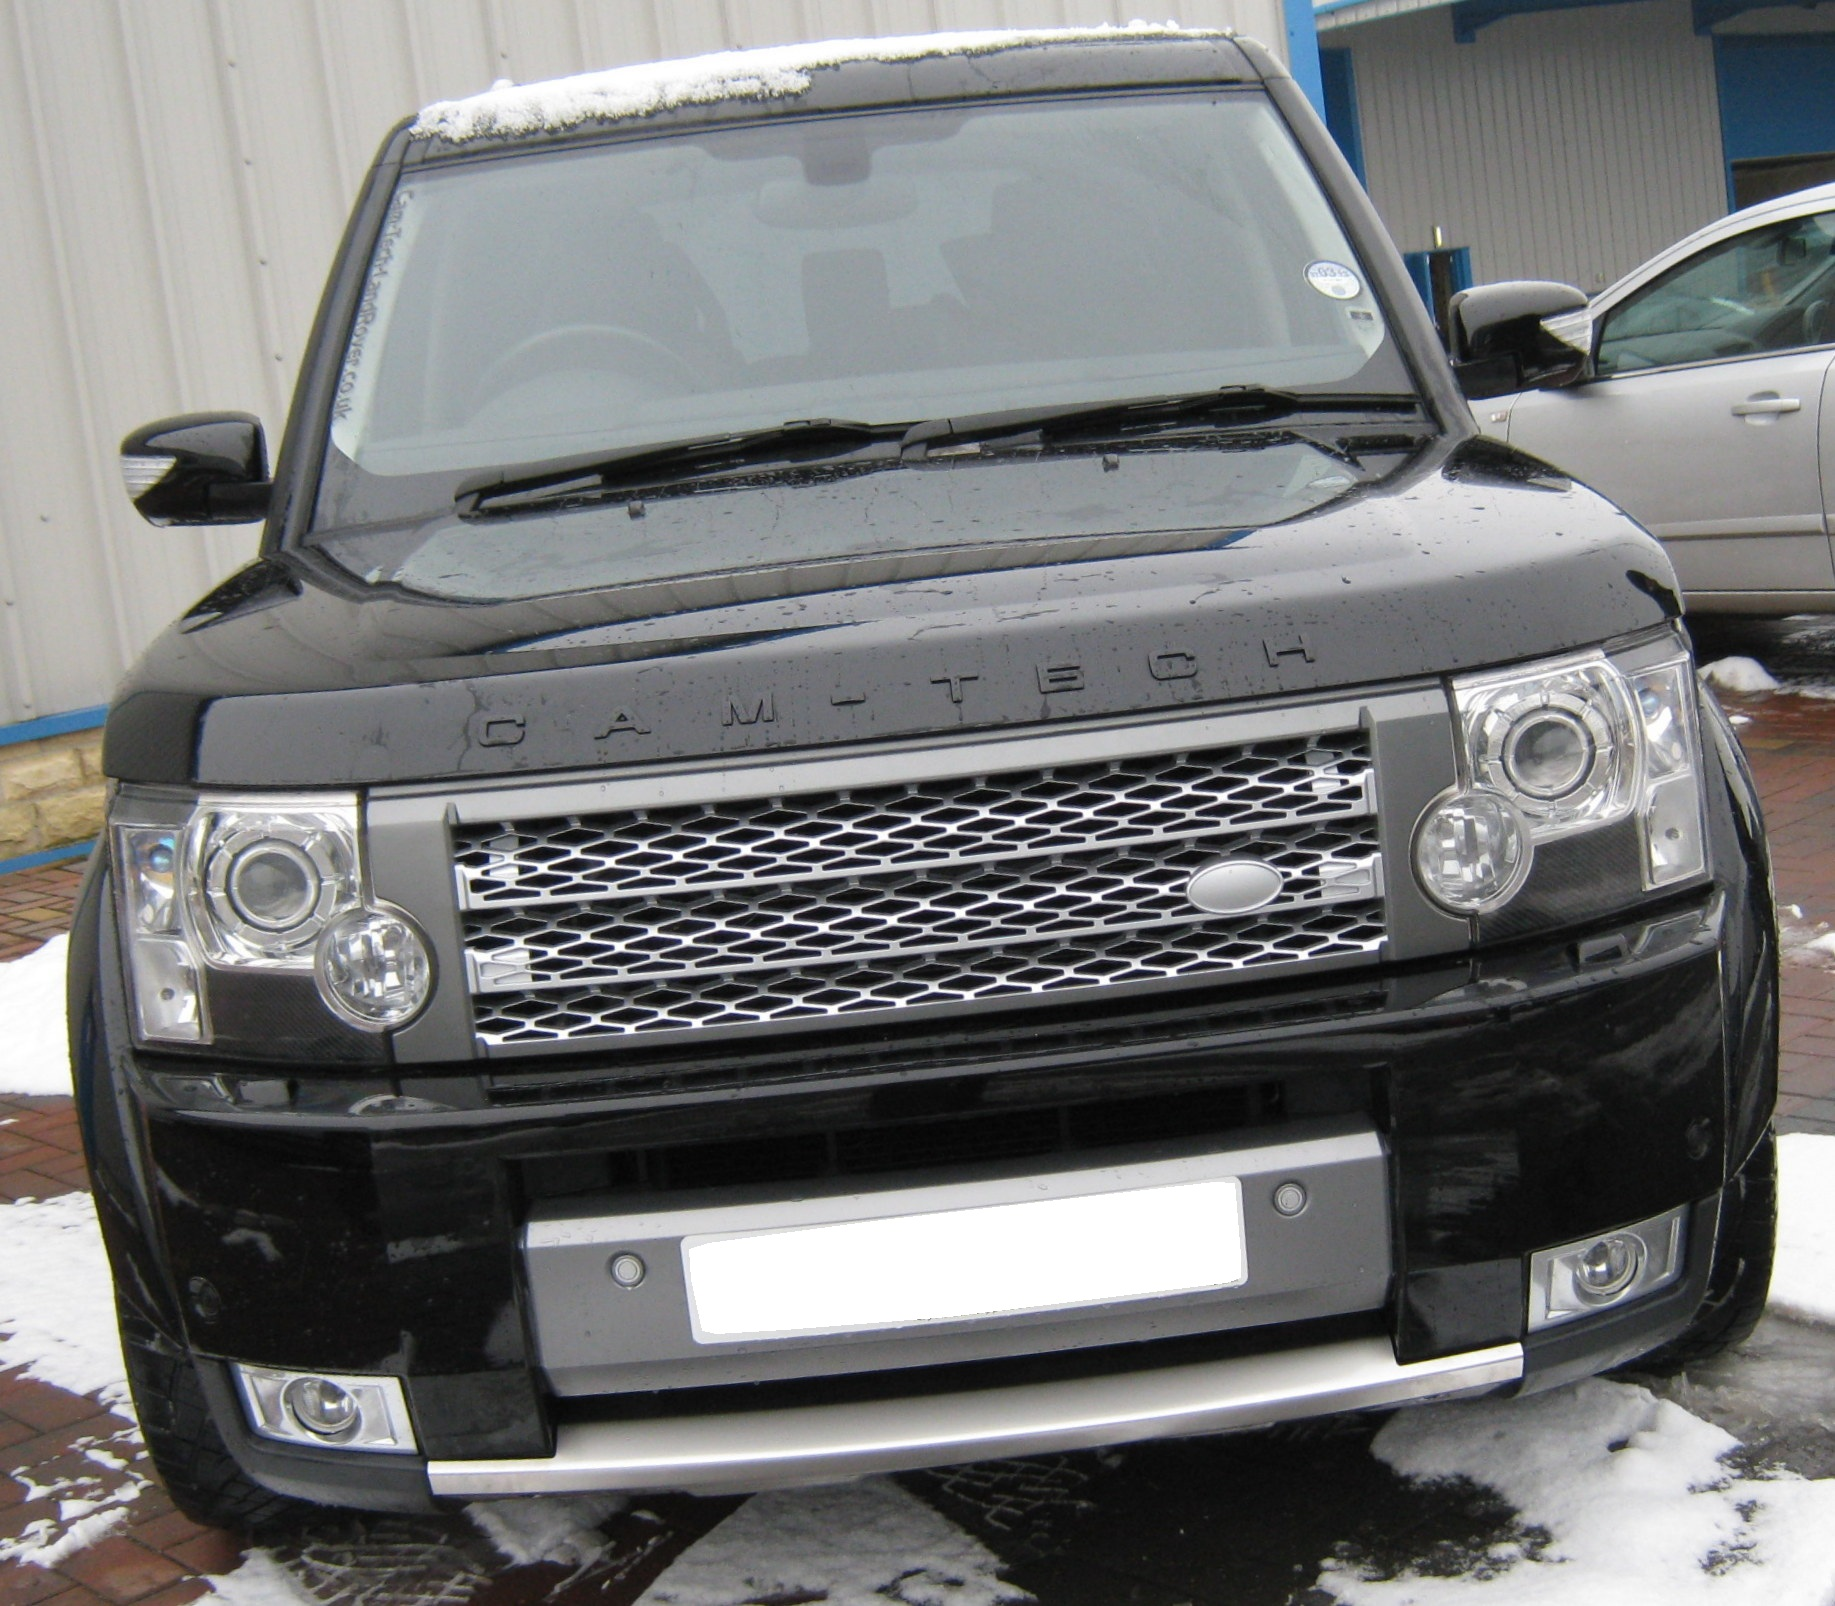 Sold Land Rover Discovery 3 Discov: Supercharged Style Front Grille Silver Grey Land Rover